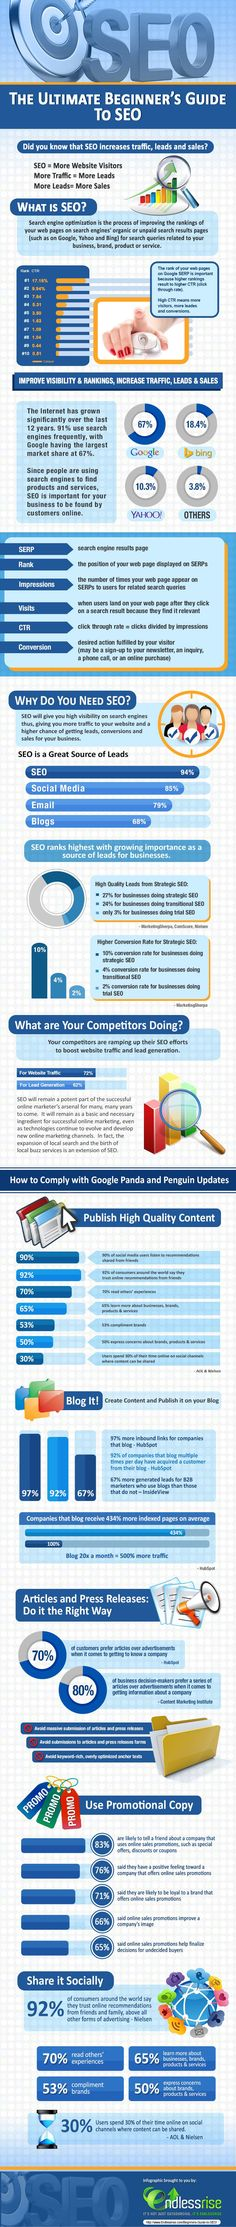 SEO infographic Ultimate Beginner's Guide to SEO infographic Search engines like Google, Bing, and Yahoo have taken over the Internet searching for brands